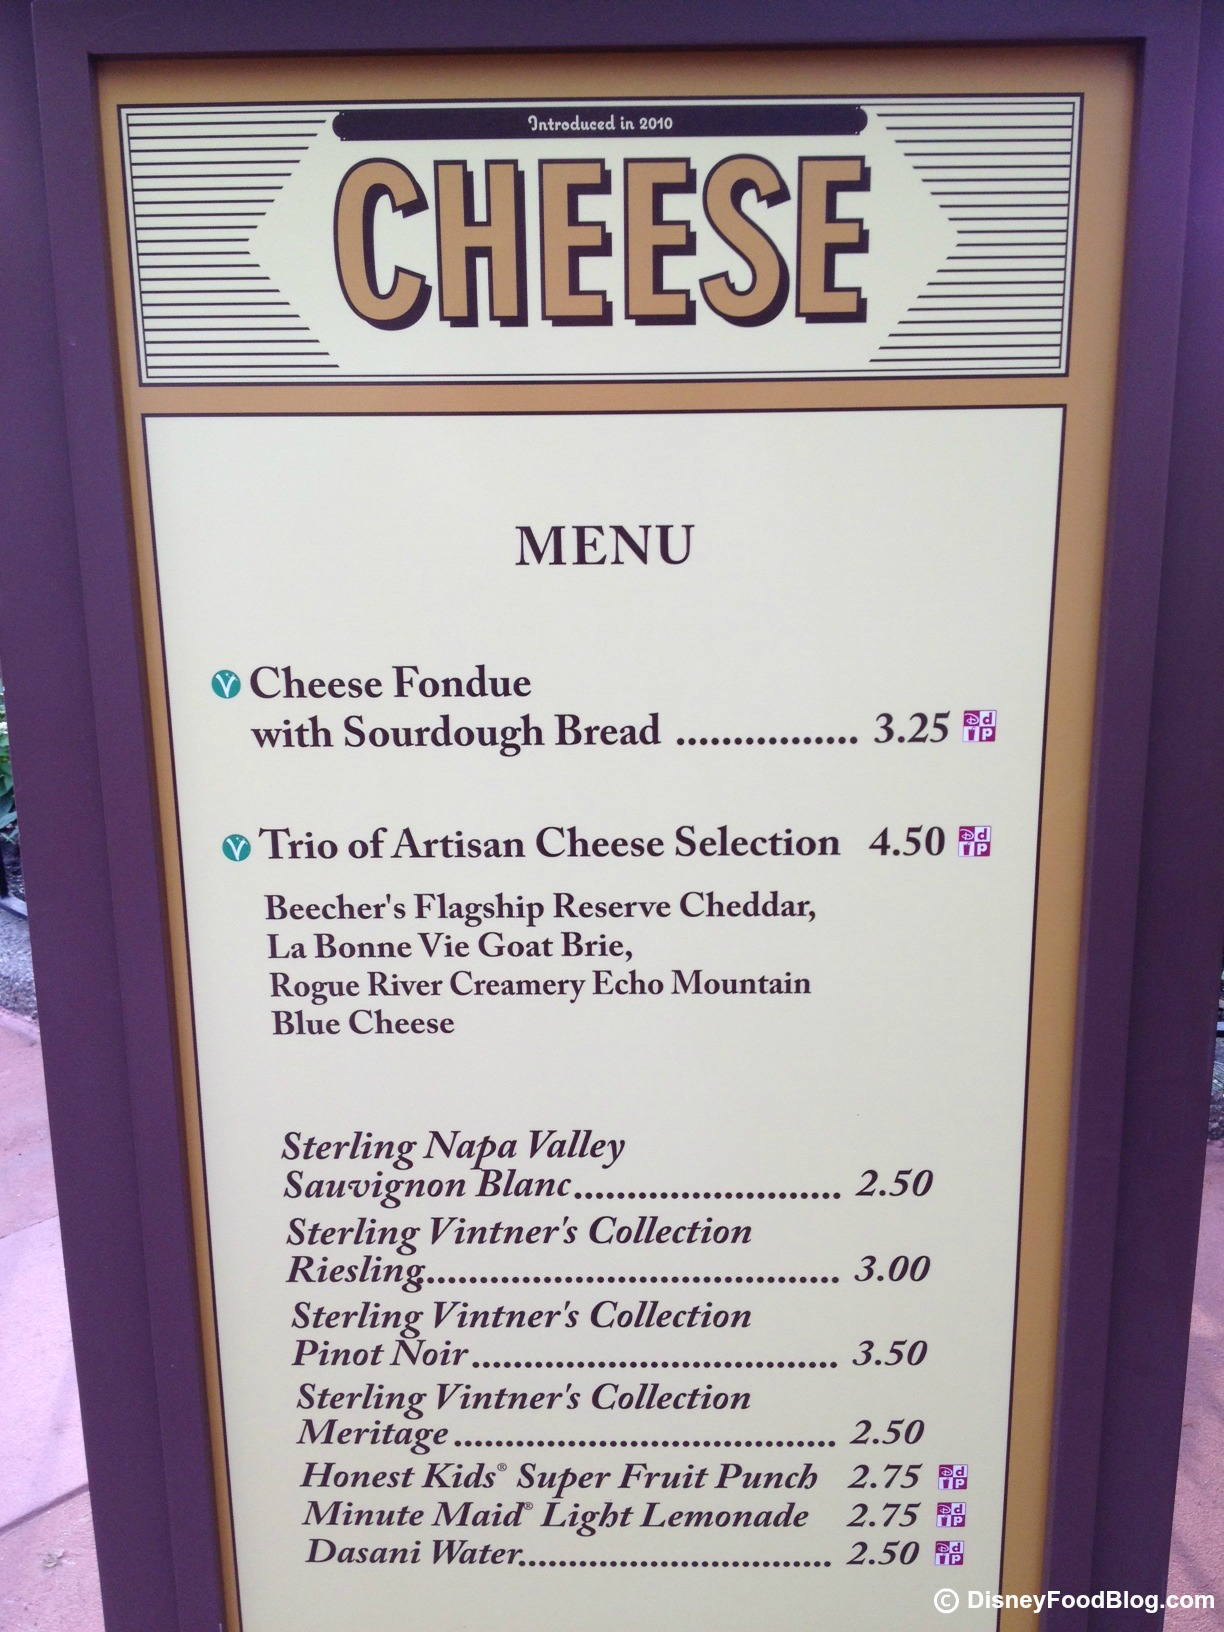 When Is The Food And Wine Festival In Disney